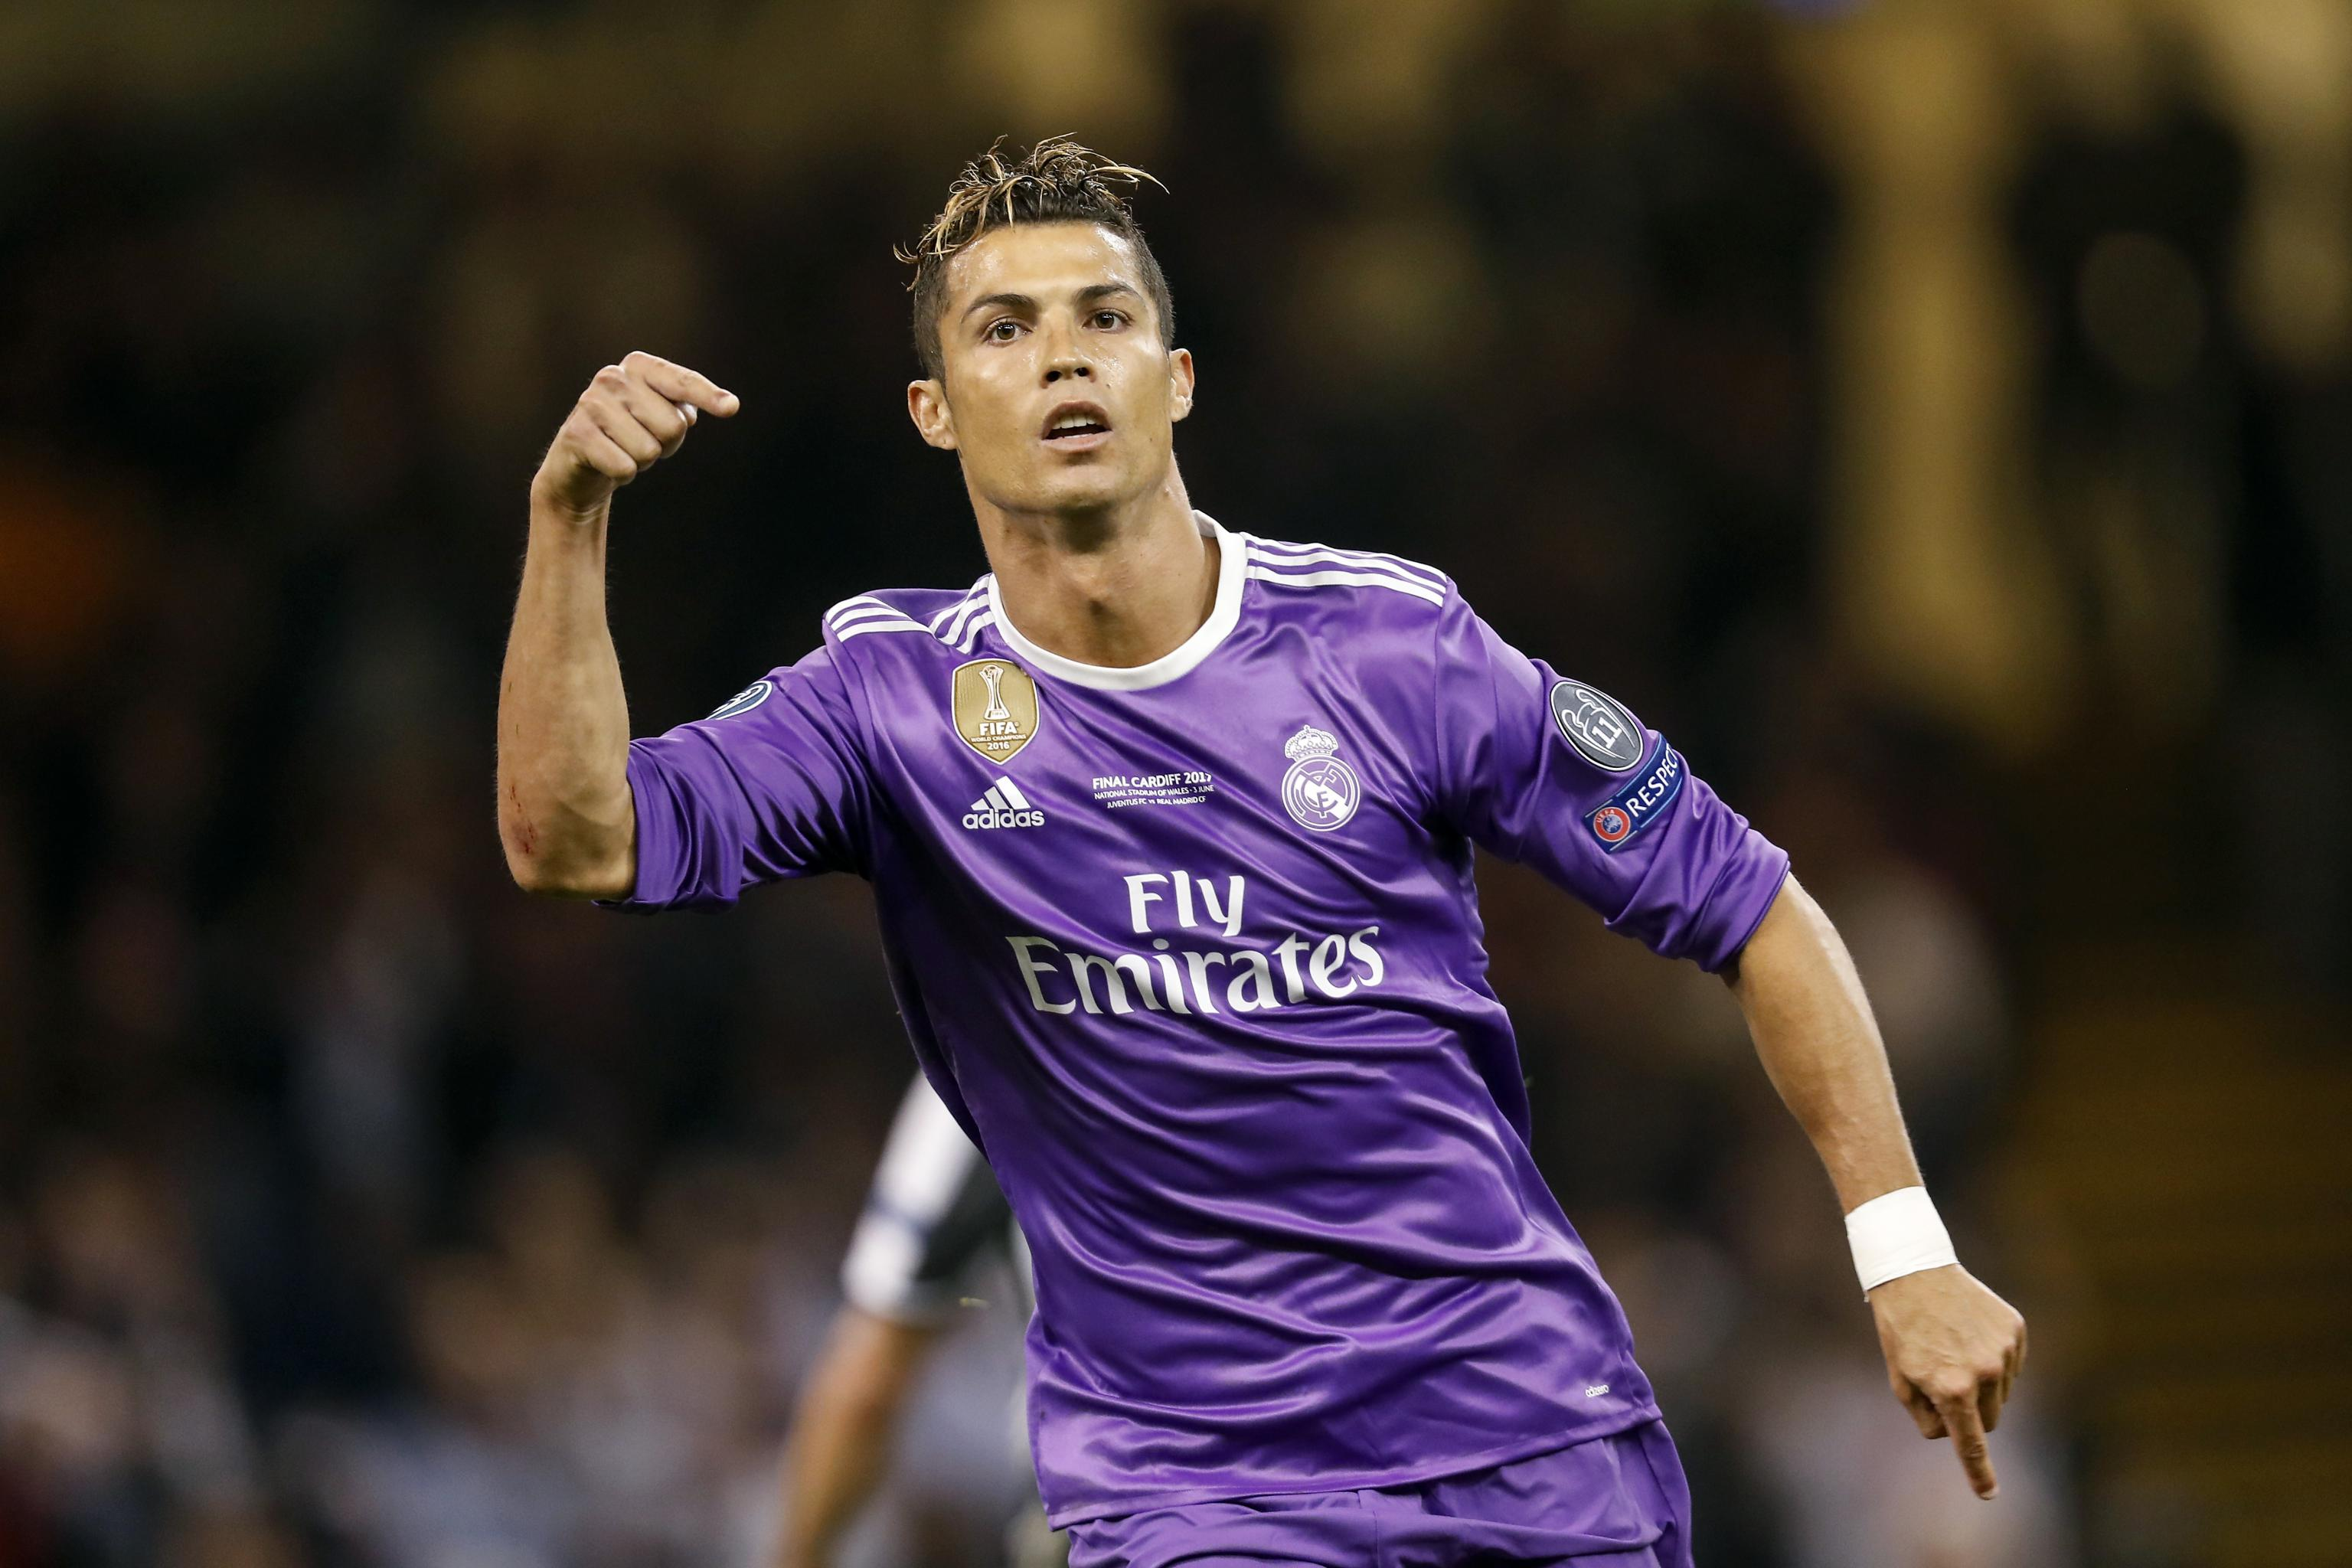 new arrival fb3be d1c06 Cristiano Ronaldo Announced as FIFA 18 Cover Star, Release ...